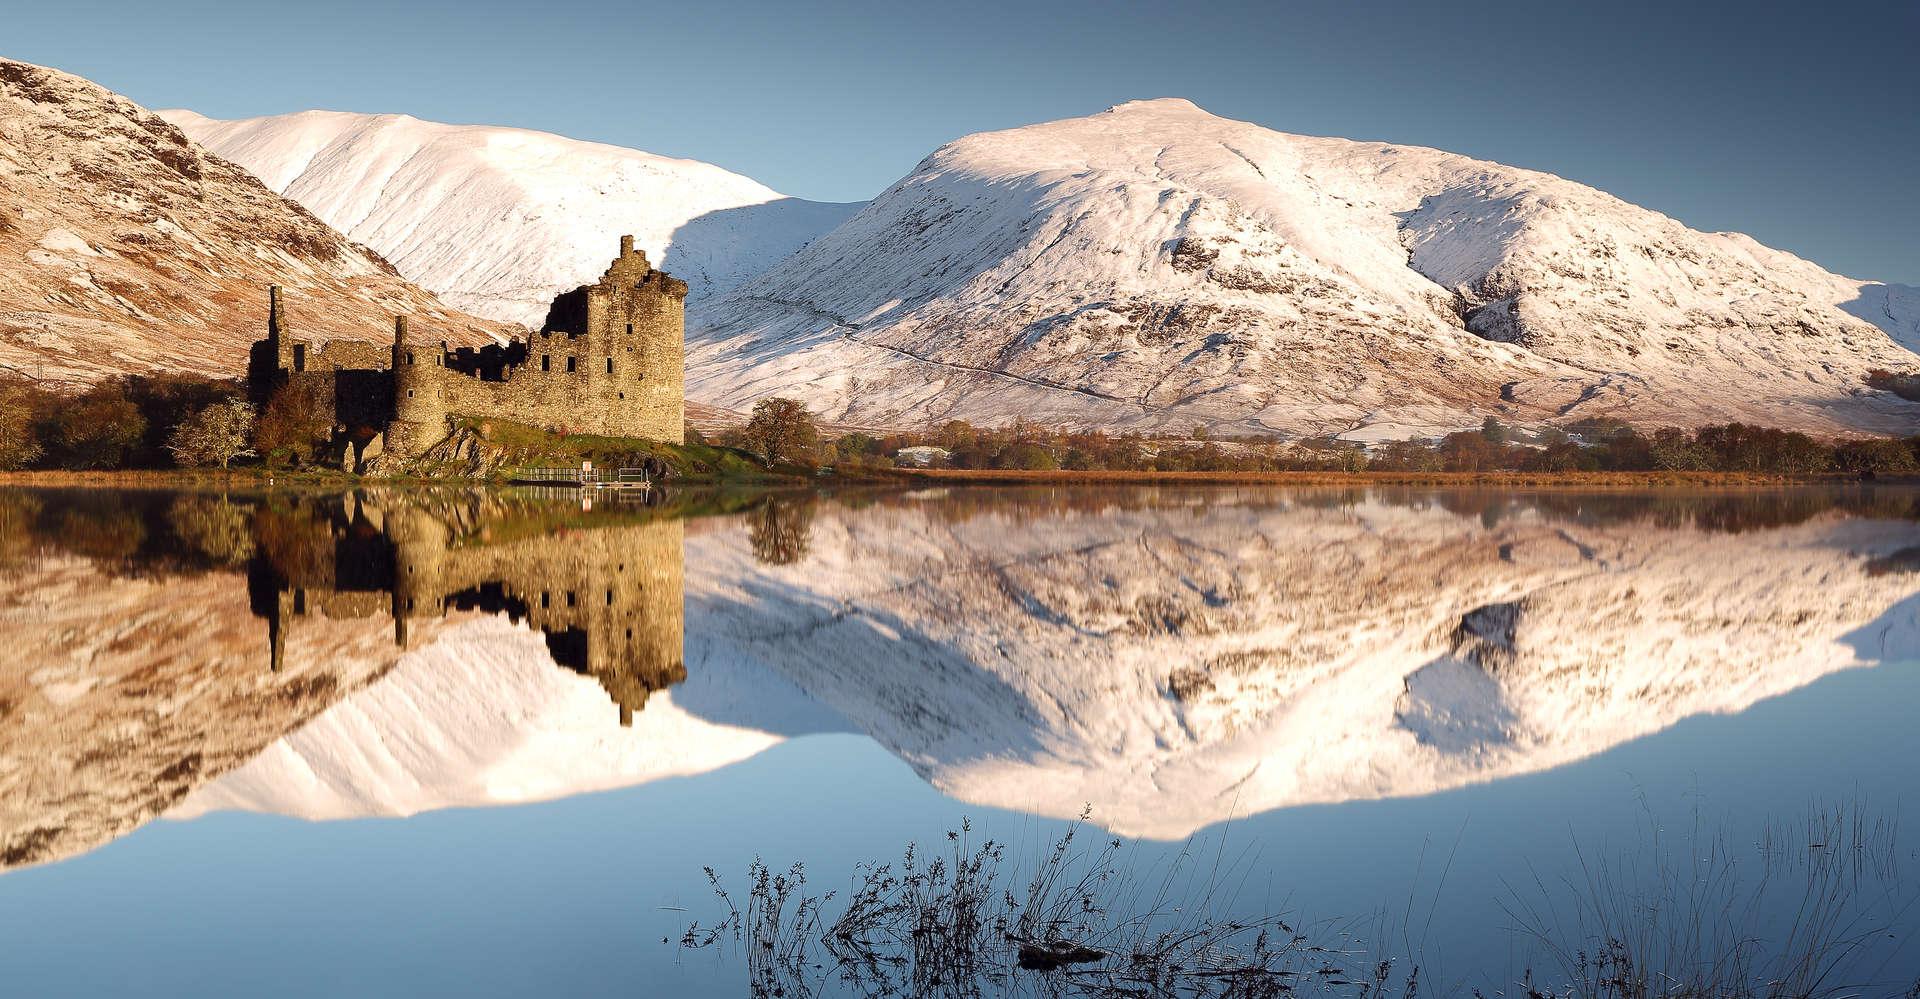 private tour to kichurn castle on loch awe in scotland with snowy mountains in background